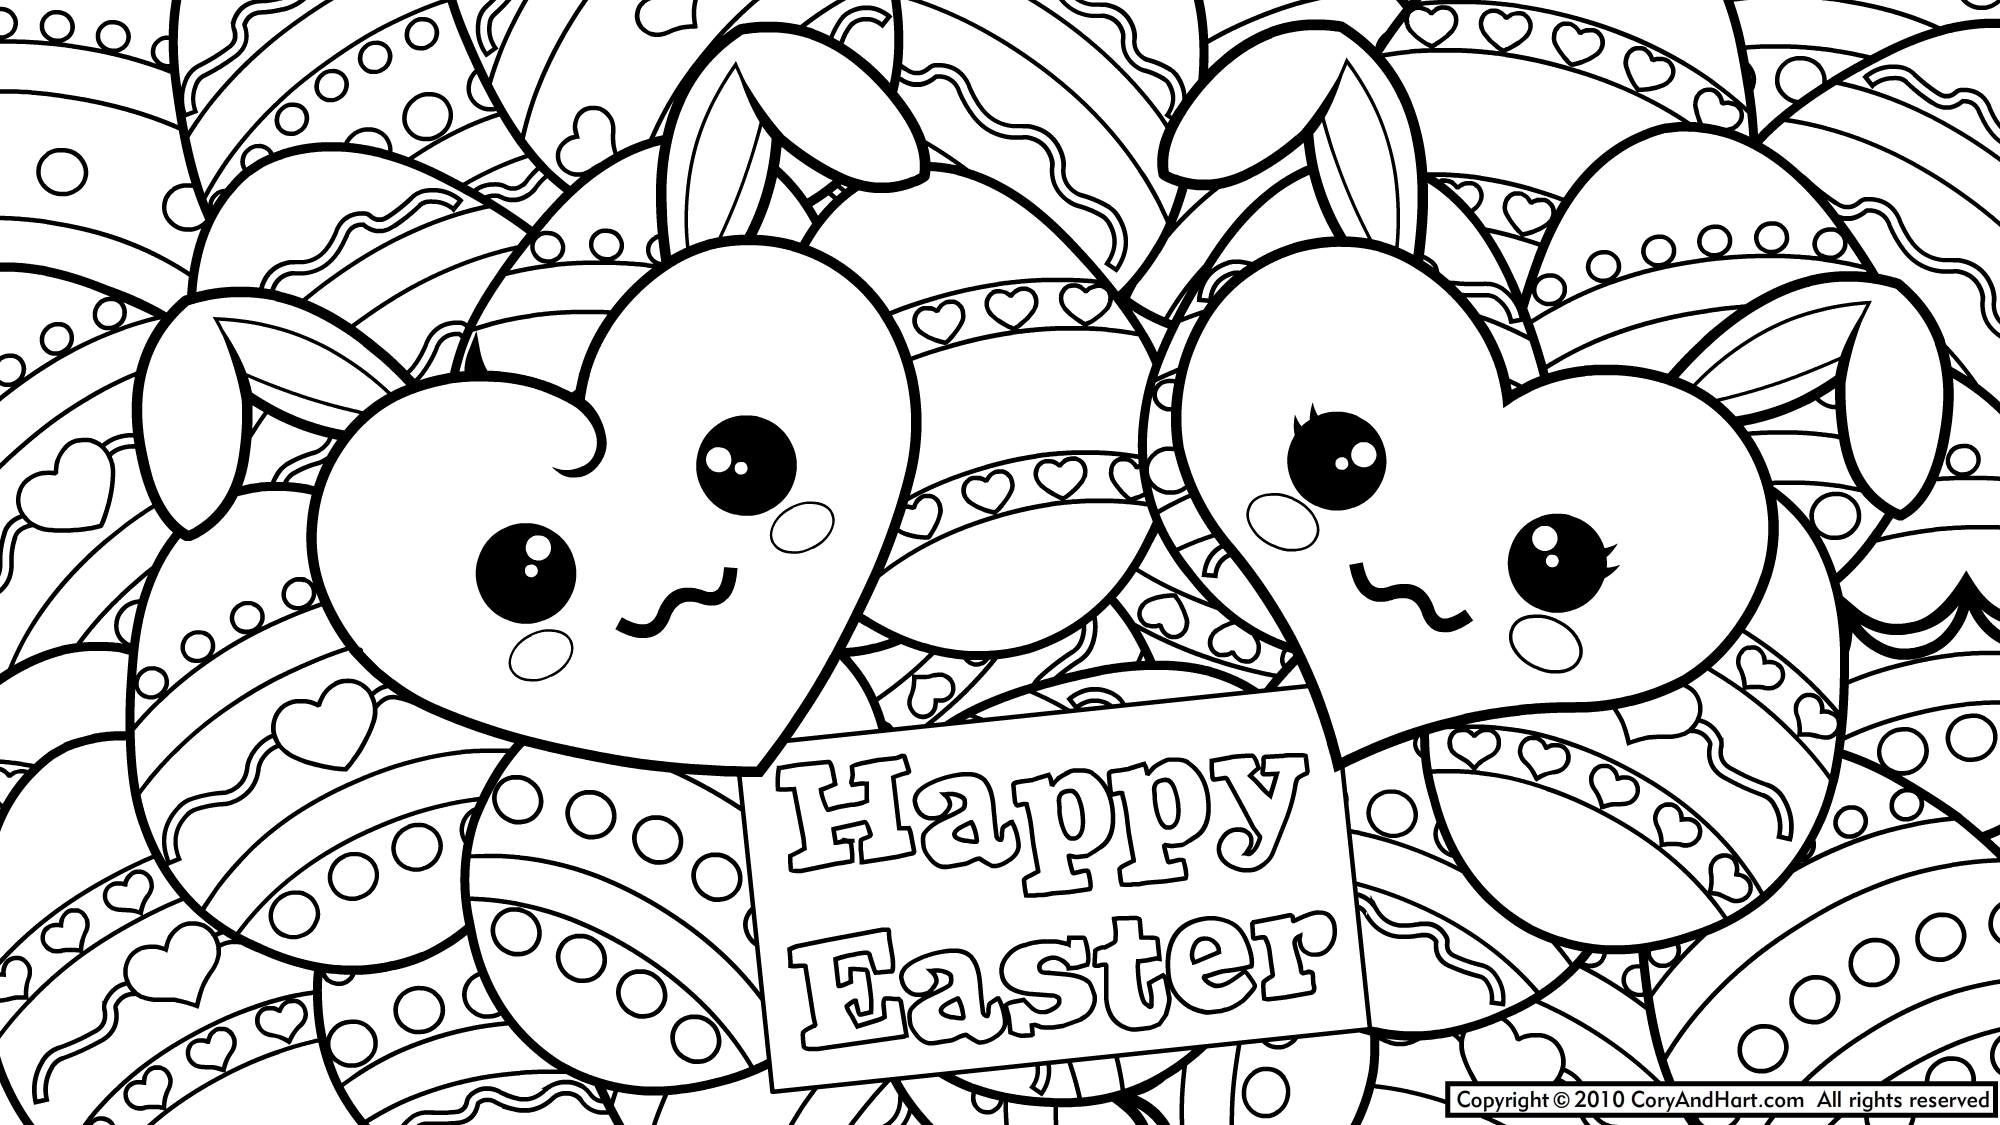 easter coloring page to print,printable,coloring pages